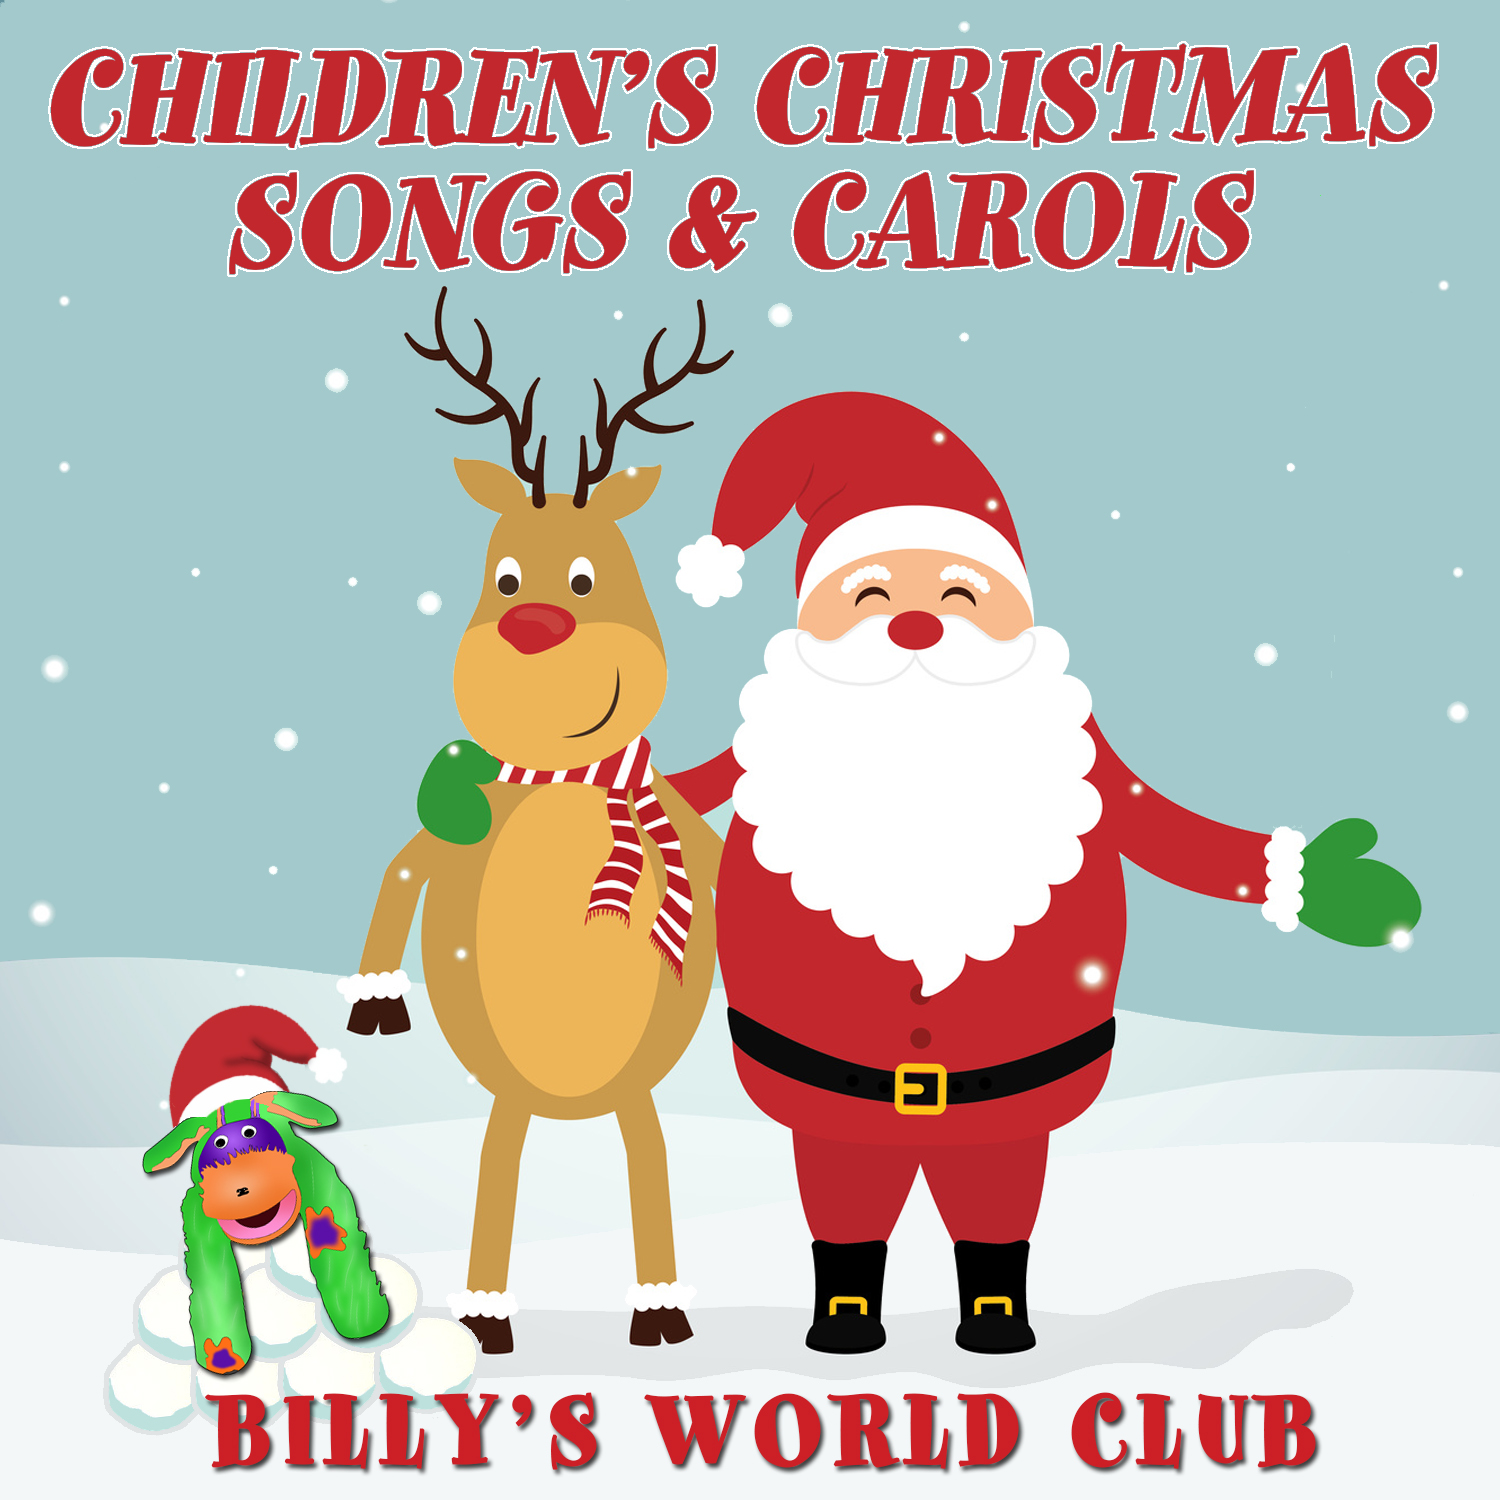 Billys World Carols and Songs